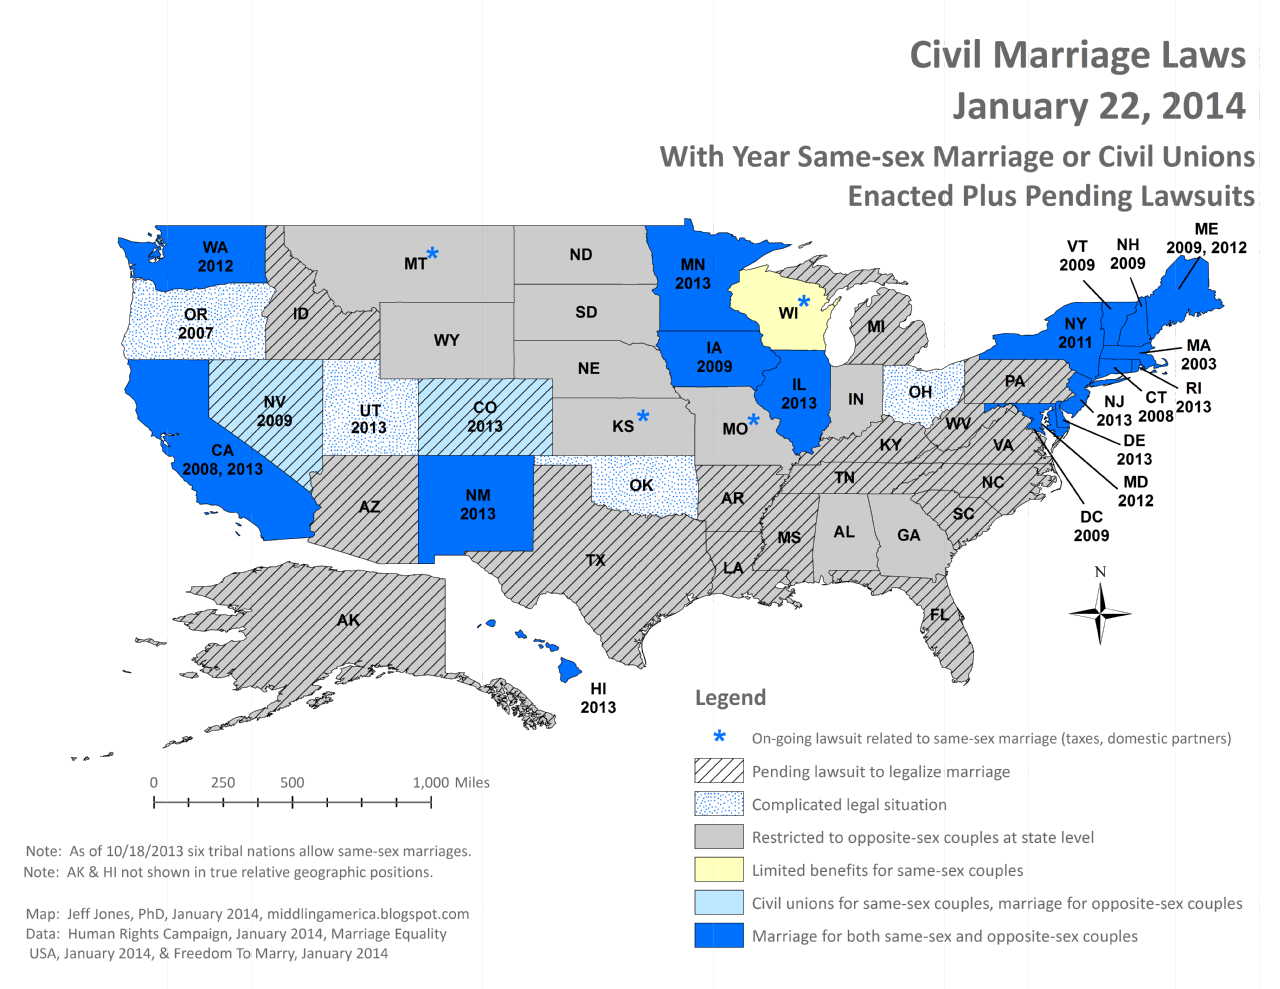 FileUS Civil Marriage Lawspng Wikimedia Commons - Us gay marriage map